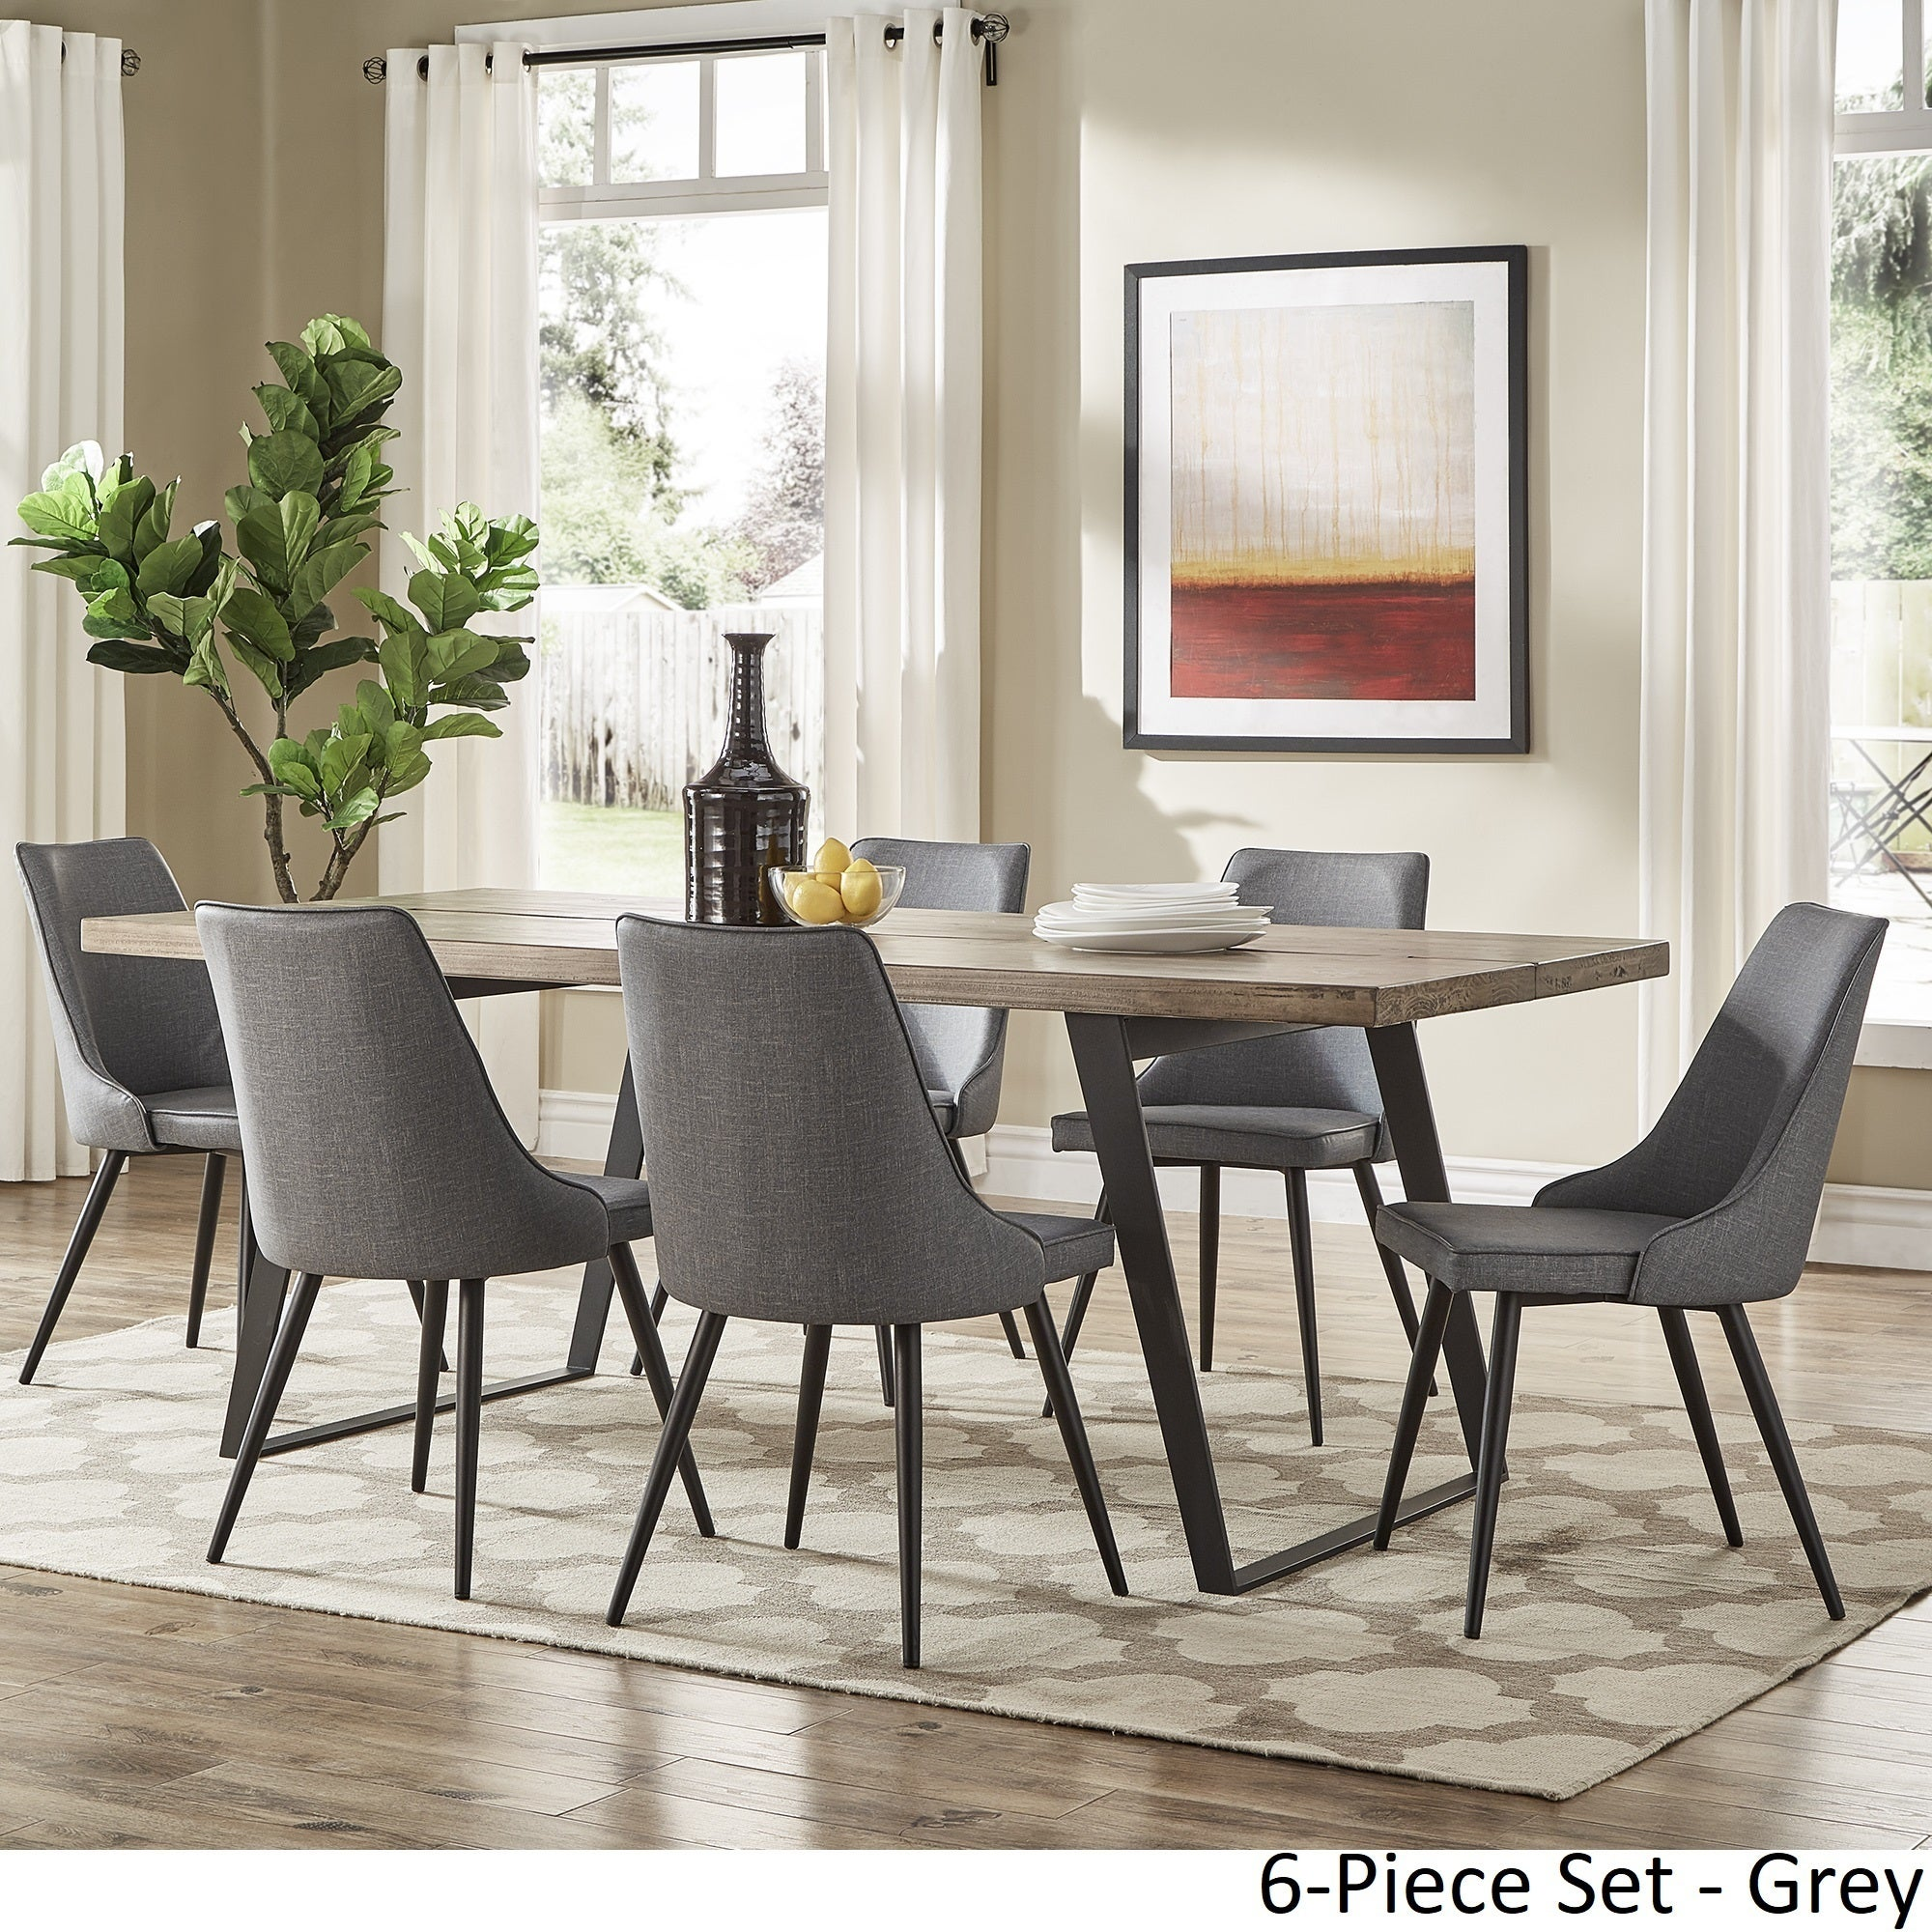 Division Mid-Century Split Top Rectangular Dining Set by iNSPIRE Q Modern -  Free Shipping Today - Overstock.com - 24360228